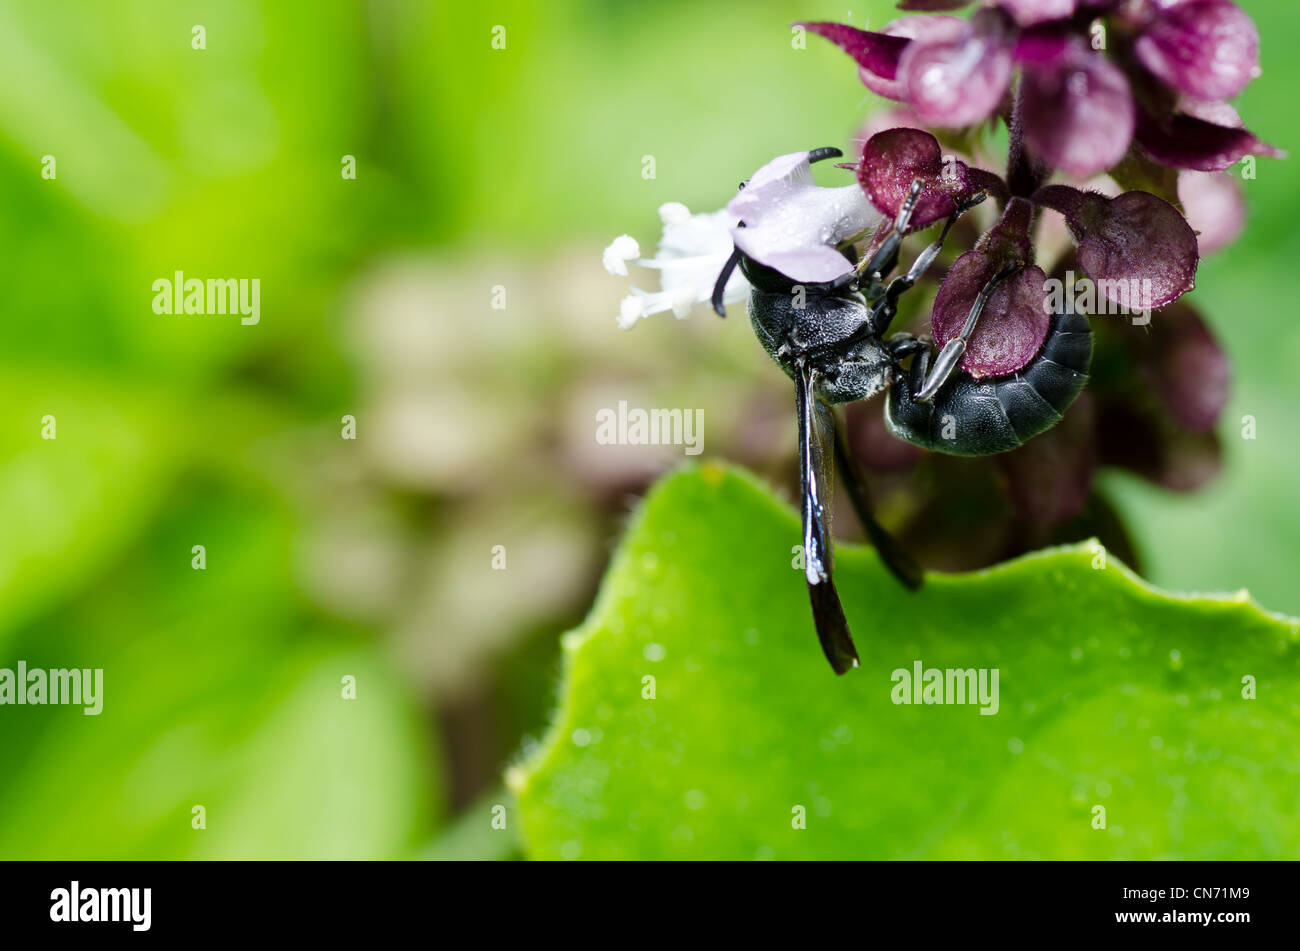 black wasp in green nature or in garden. It's danger. - Stock Image